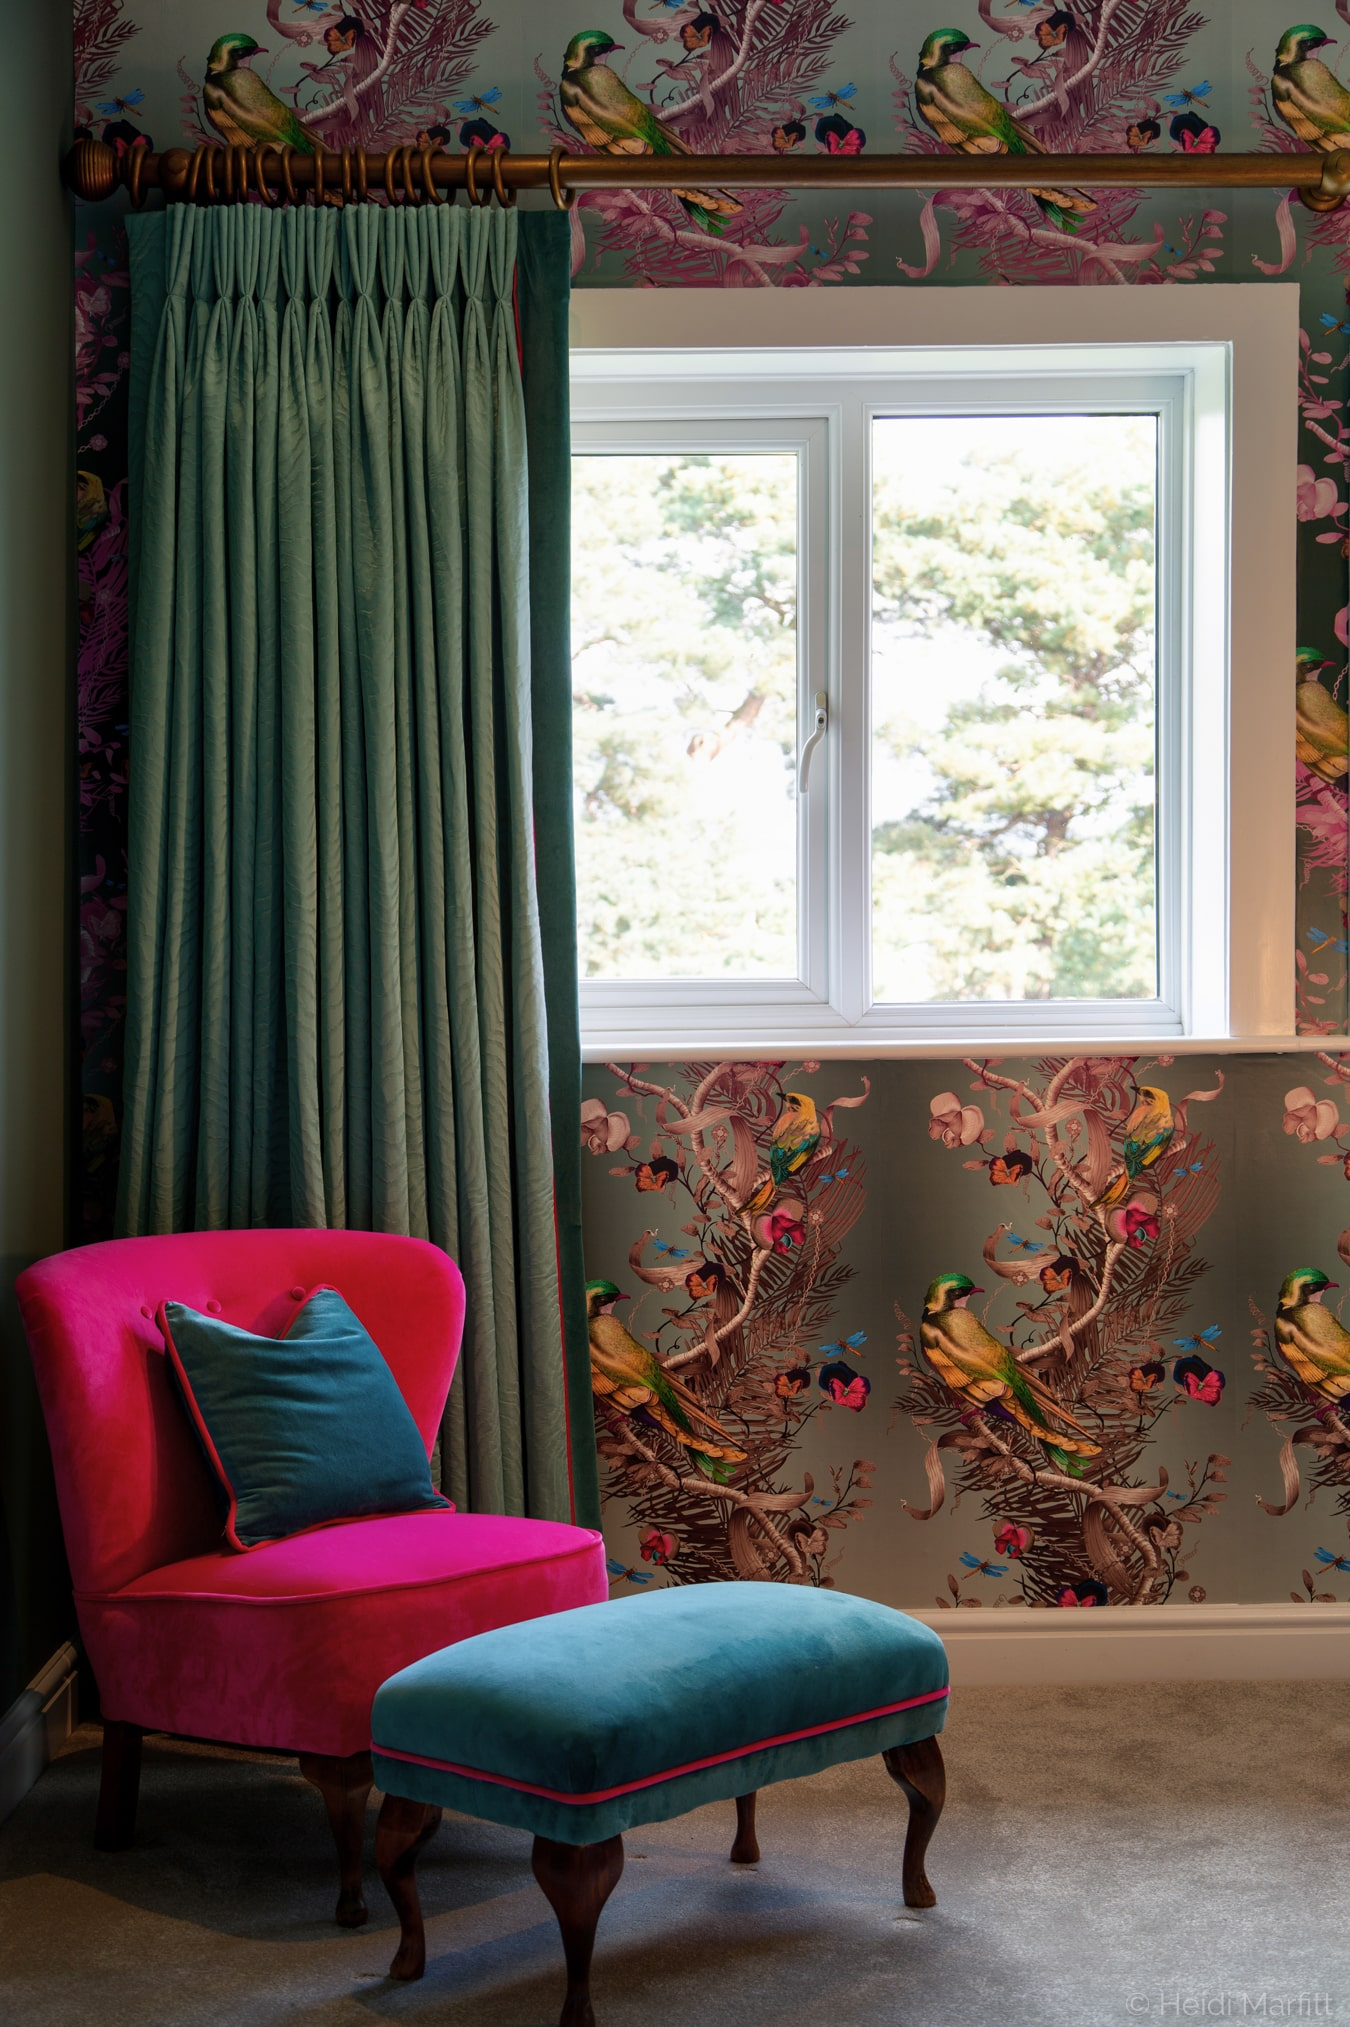 Eau de nil curtains and raspberry pink chair perfectly complement the beautiful Kit Miles Birds in Chains wallpaper